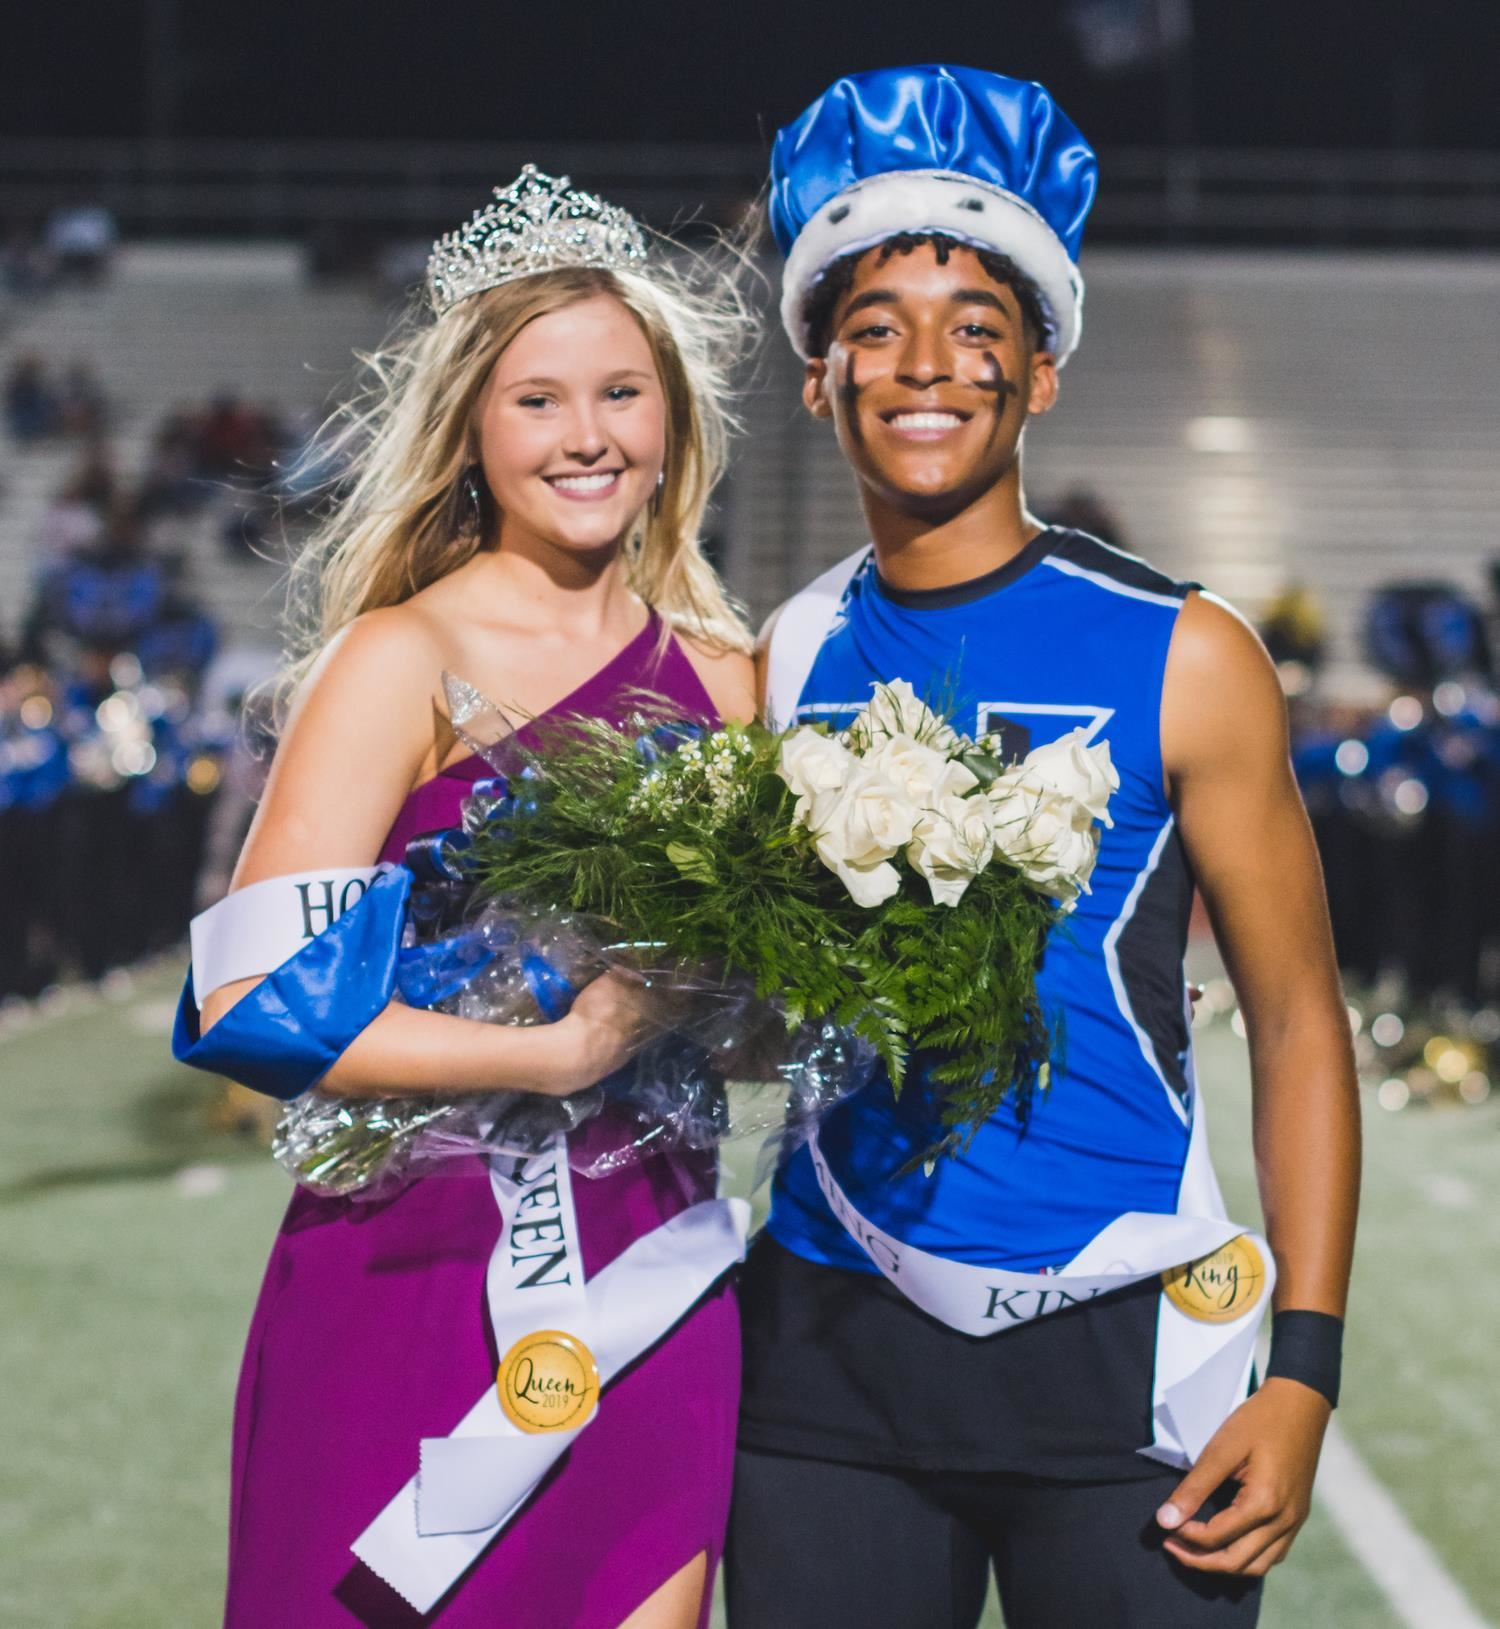 Hebron High School's Homecoming Queen and King